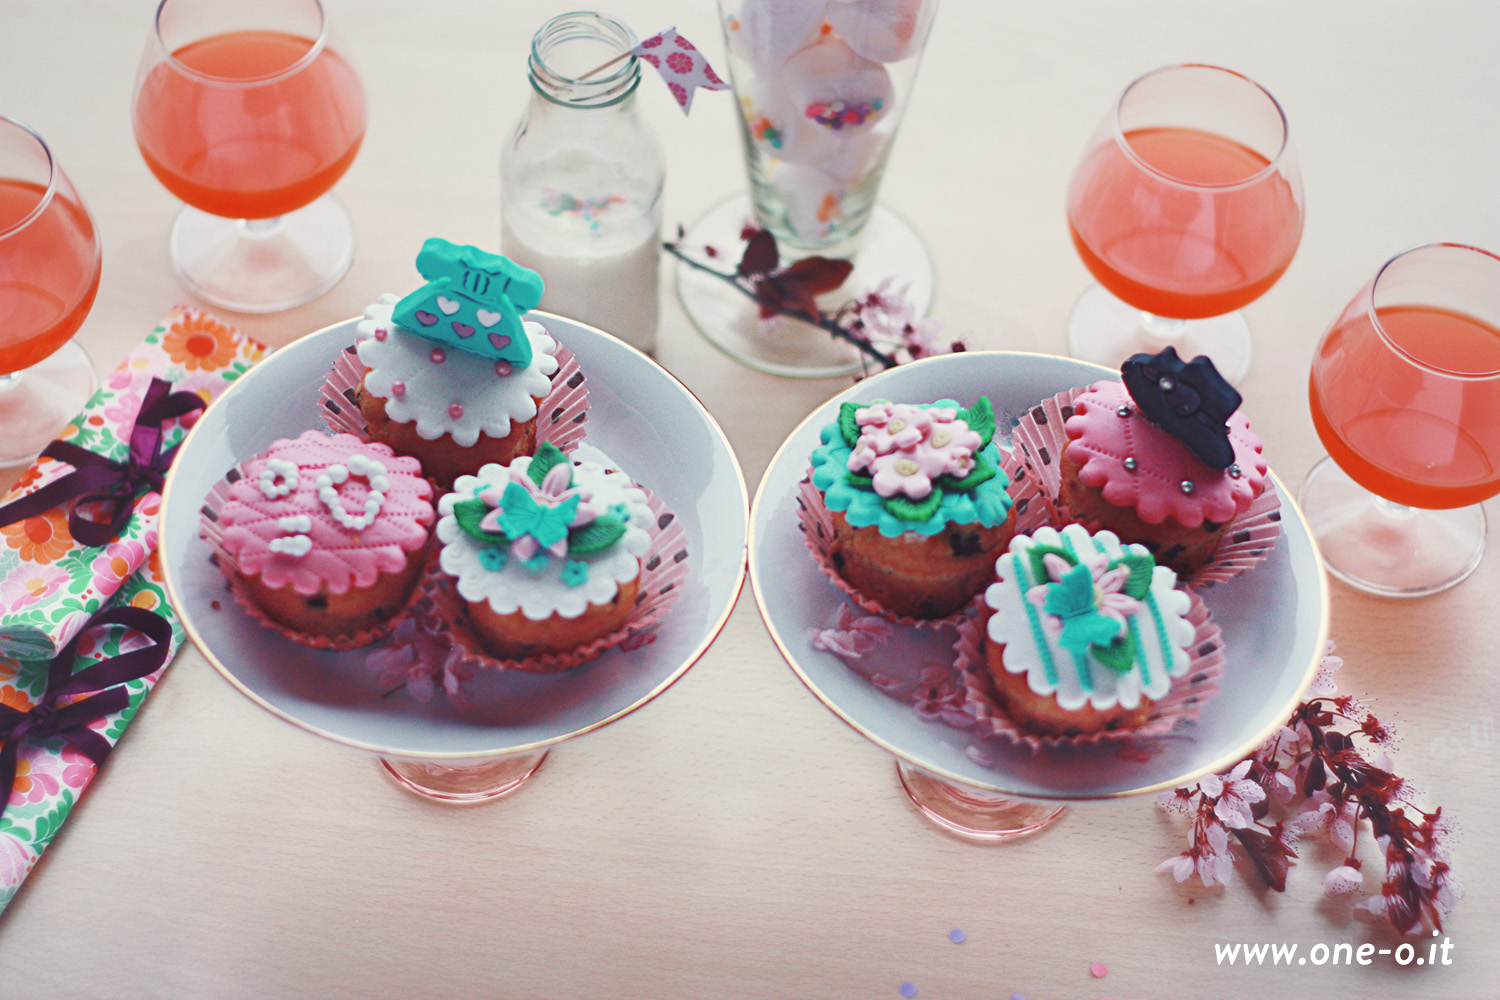 Party setting - confetti party by One O | via www.one-o.it | #diy #party #setting #place #tableware #drinks #food #cupcakes